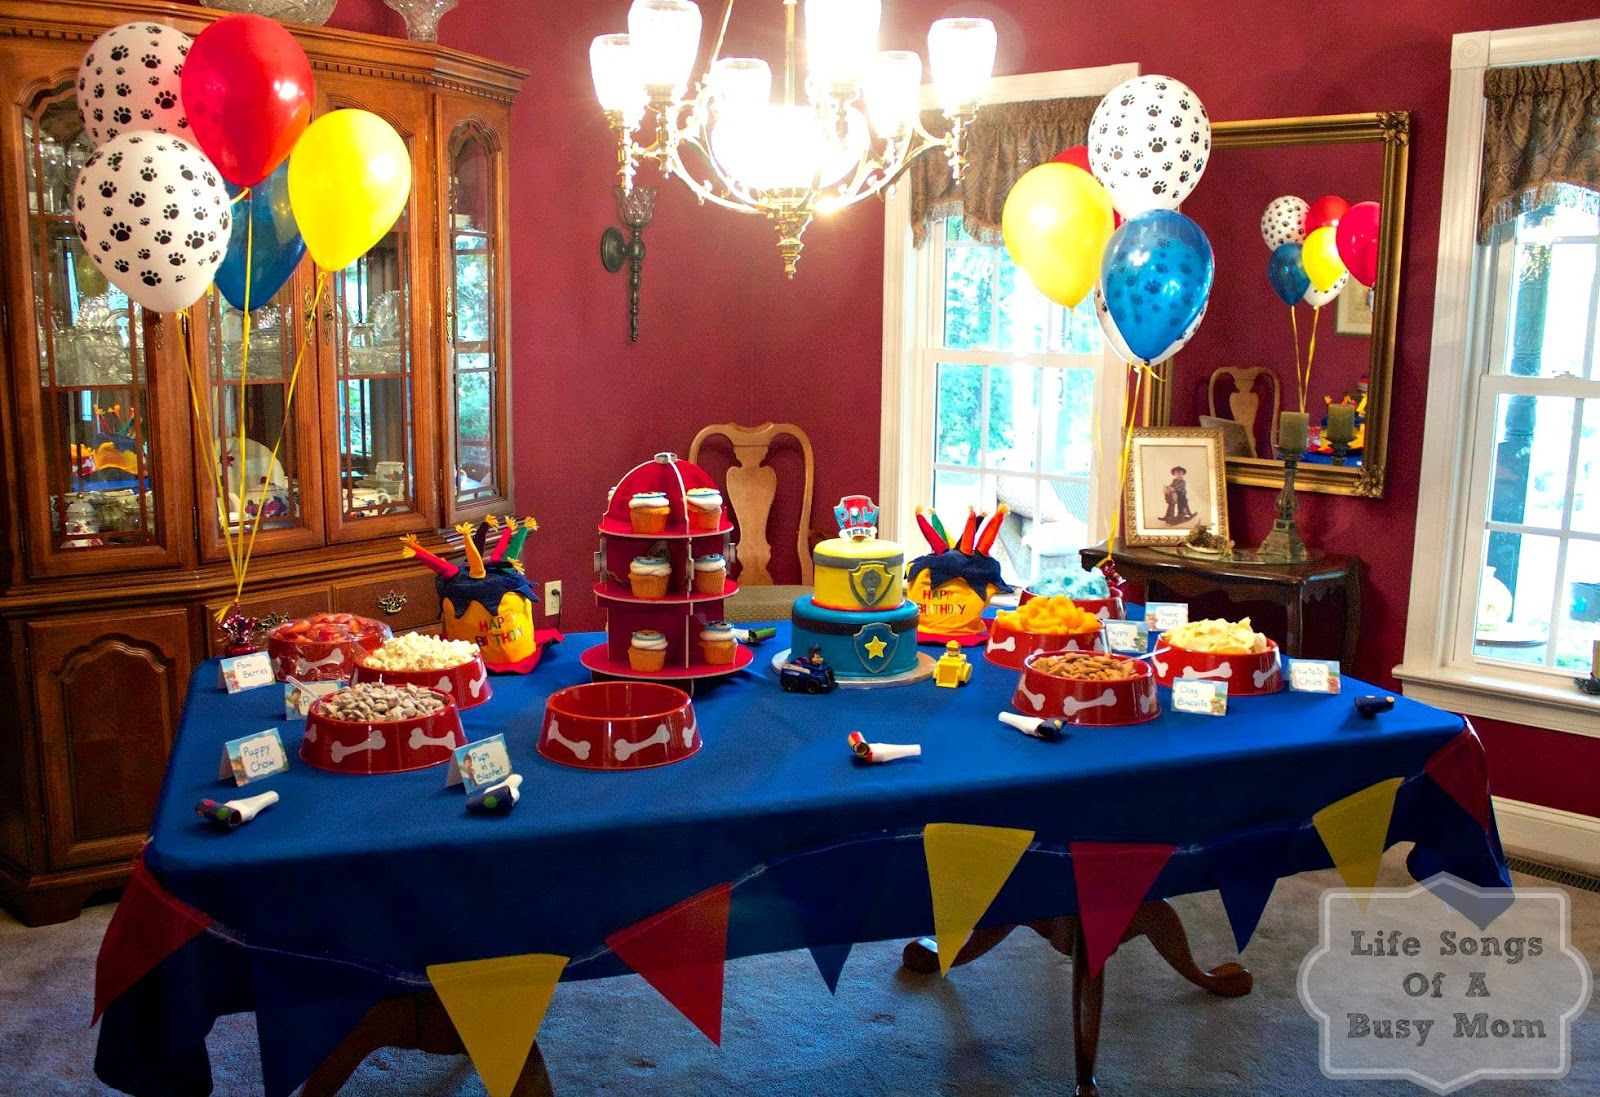 Life songs of a busy mom paw patrol birthday party for Decoration 4 life